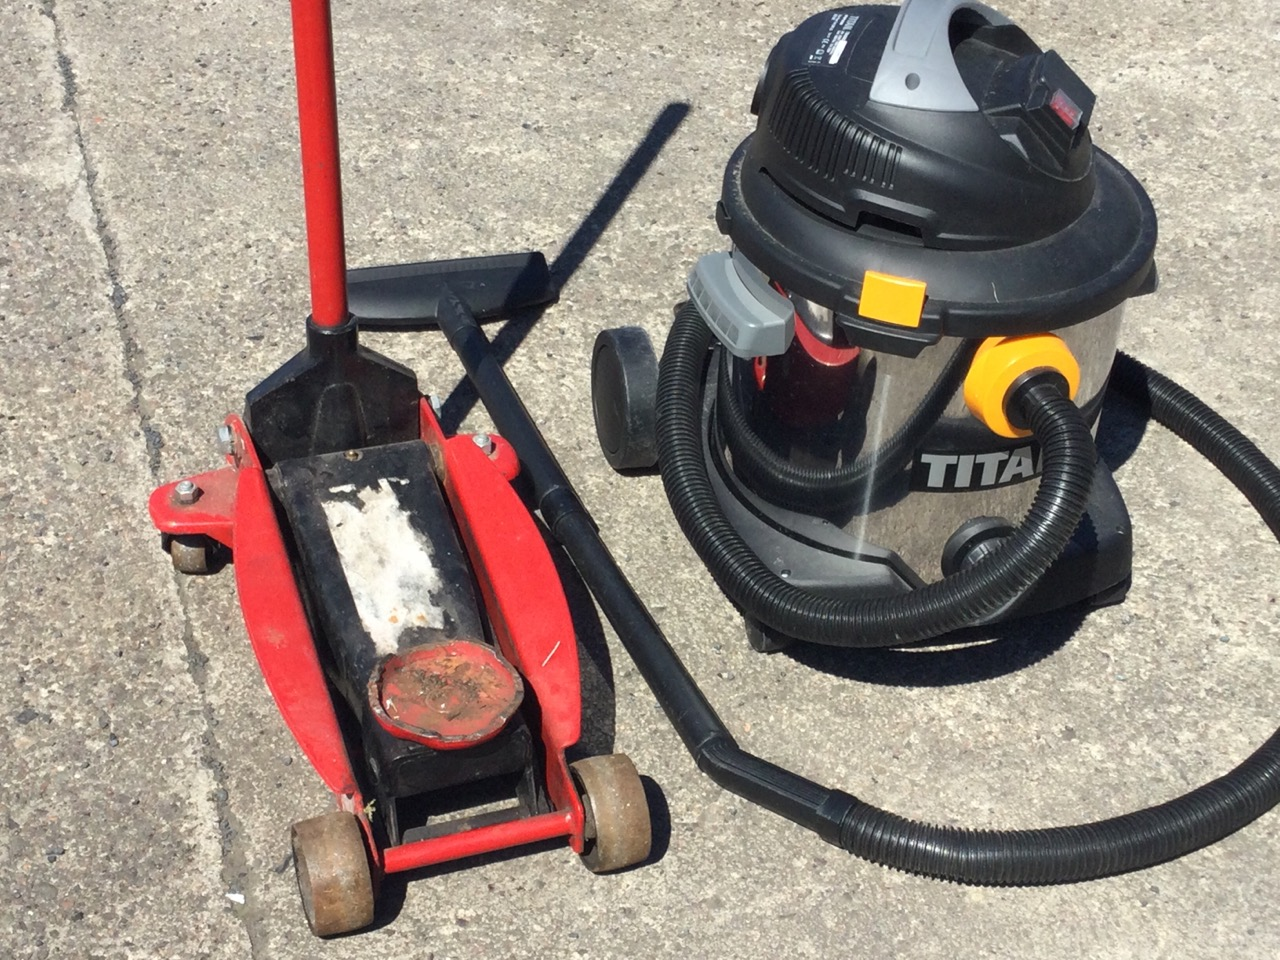 A car jack on wheels with crank handle; and a commercial Titan vacuum cleaner. (2) - Image 3 of 3